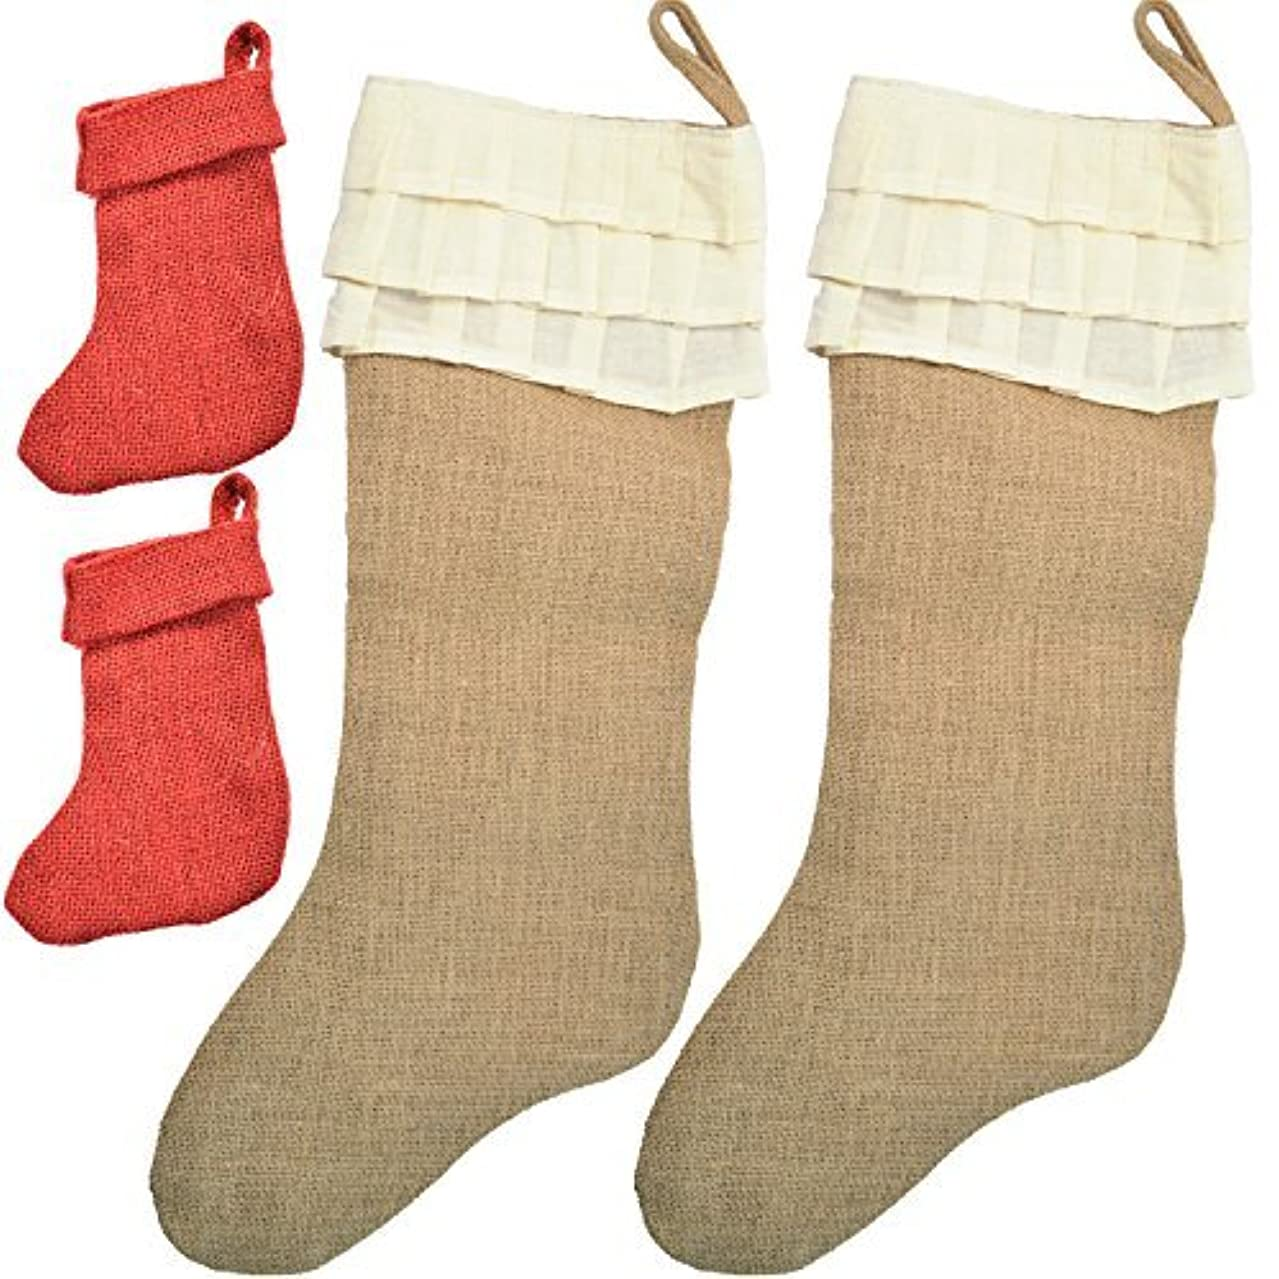 Firefly Craft Set of 2 Large Ruffled Burlap Christmas Stockings, 20 Inches By 10 Inches Each